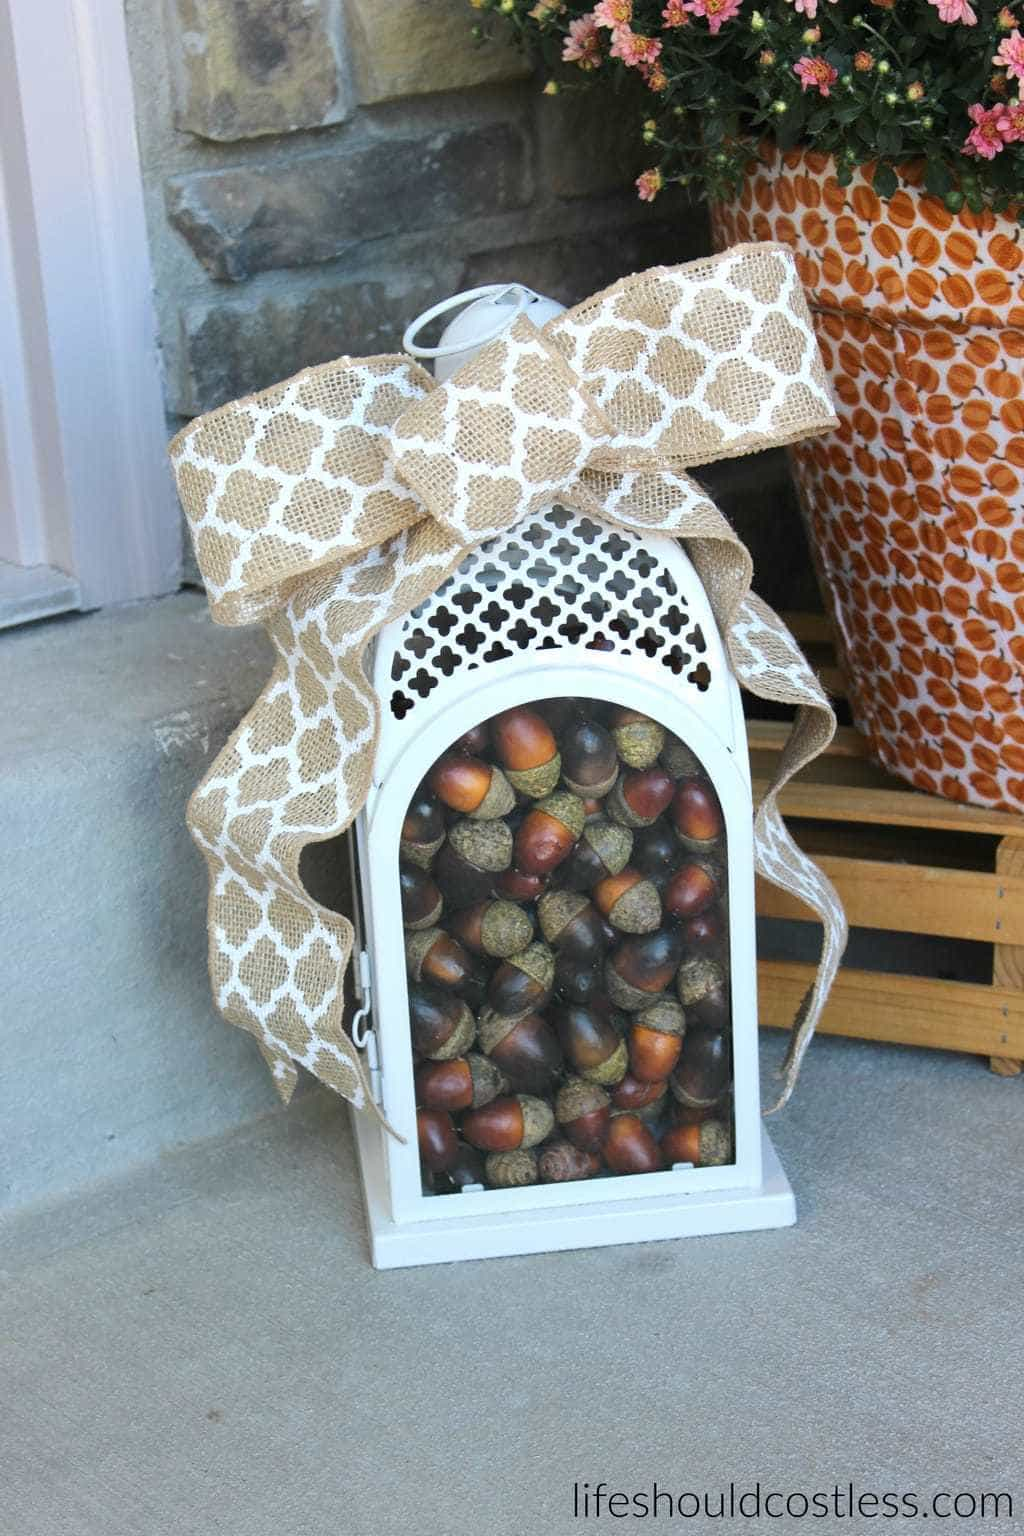 Fall lantern filled with acorns. Burlap bow. Rustic/Farmhouse decor idea.